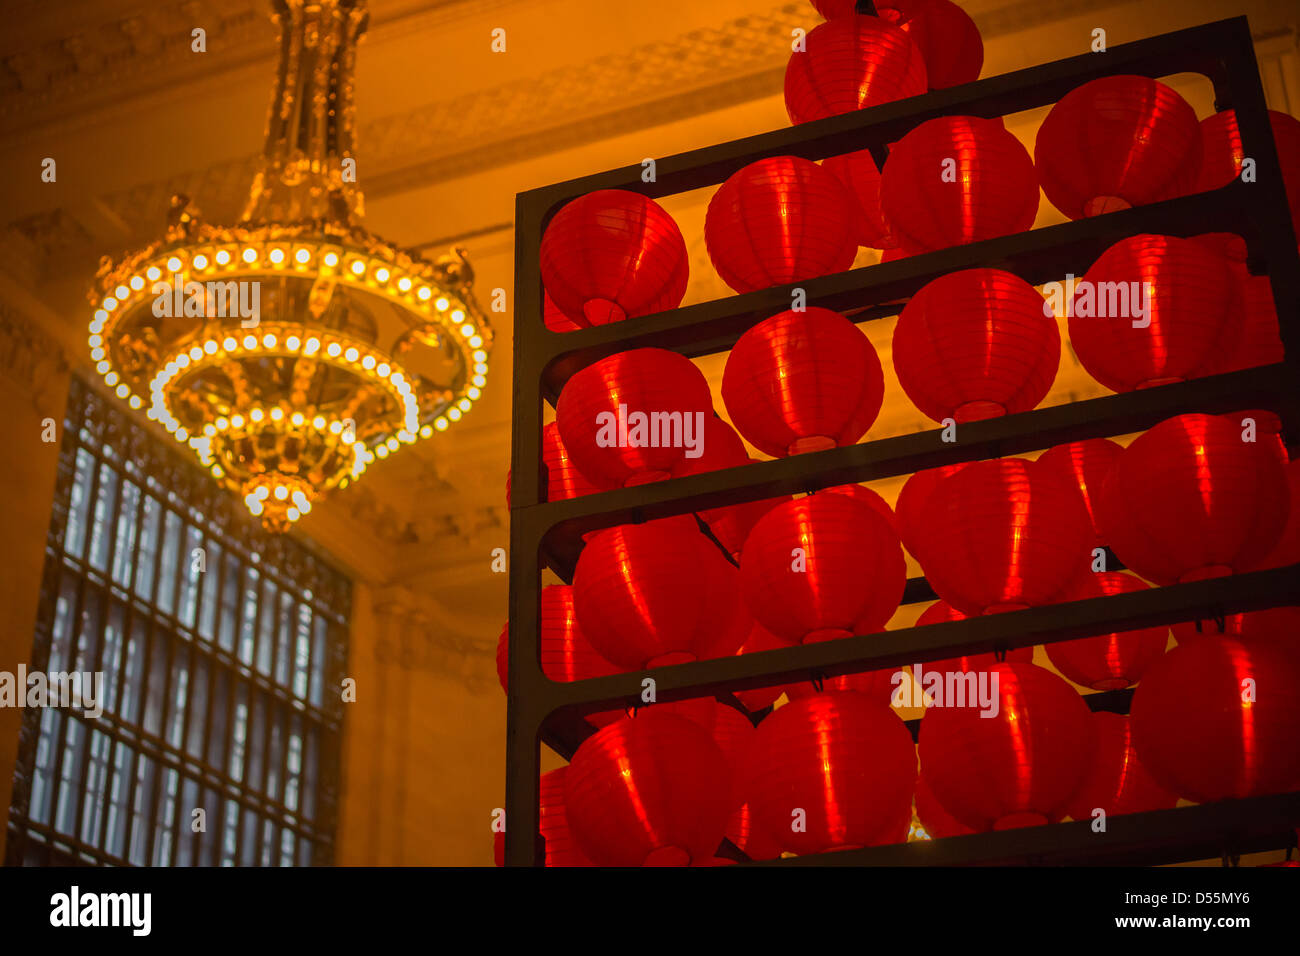 Decorative Red Lanterns Counterpoint The Ornate Chandeliers